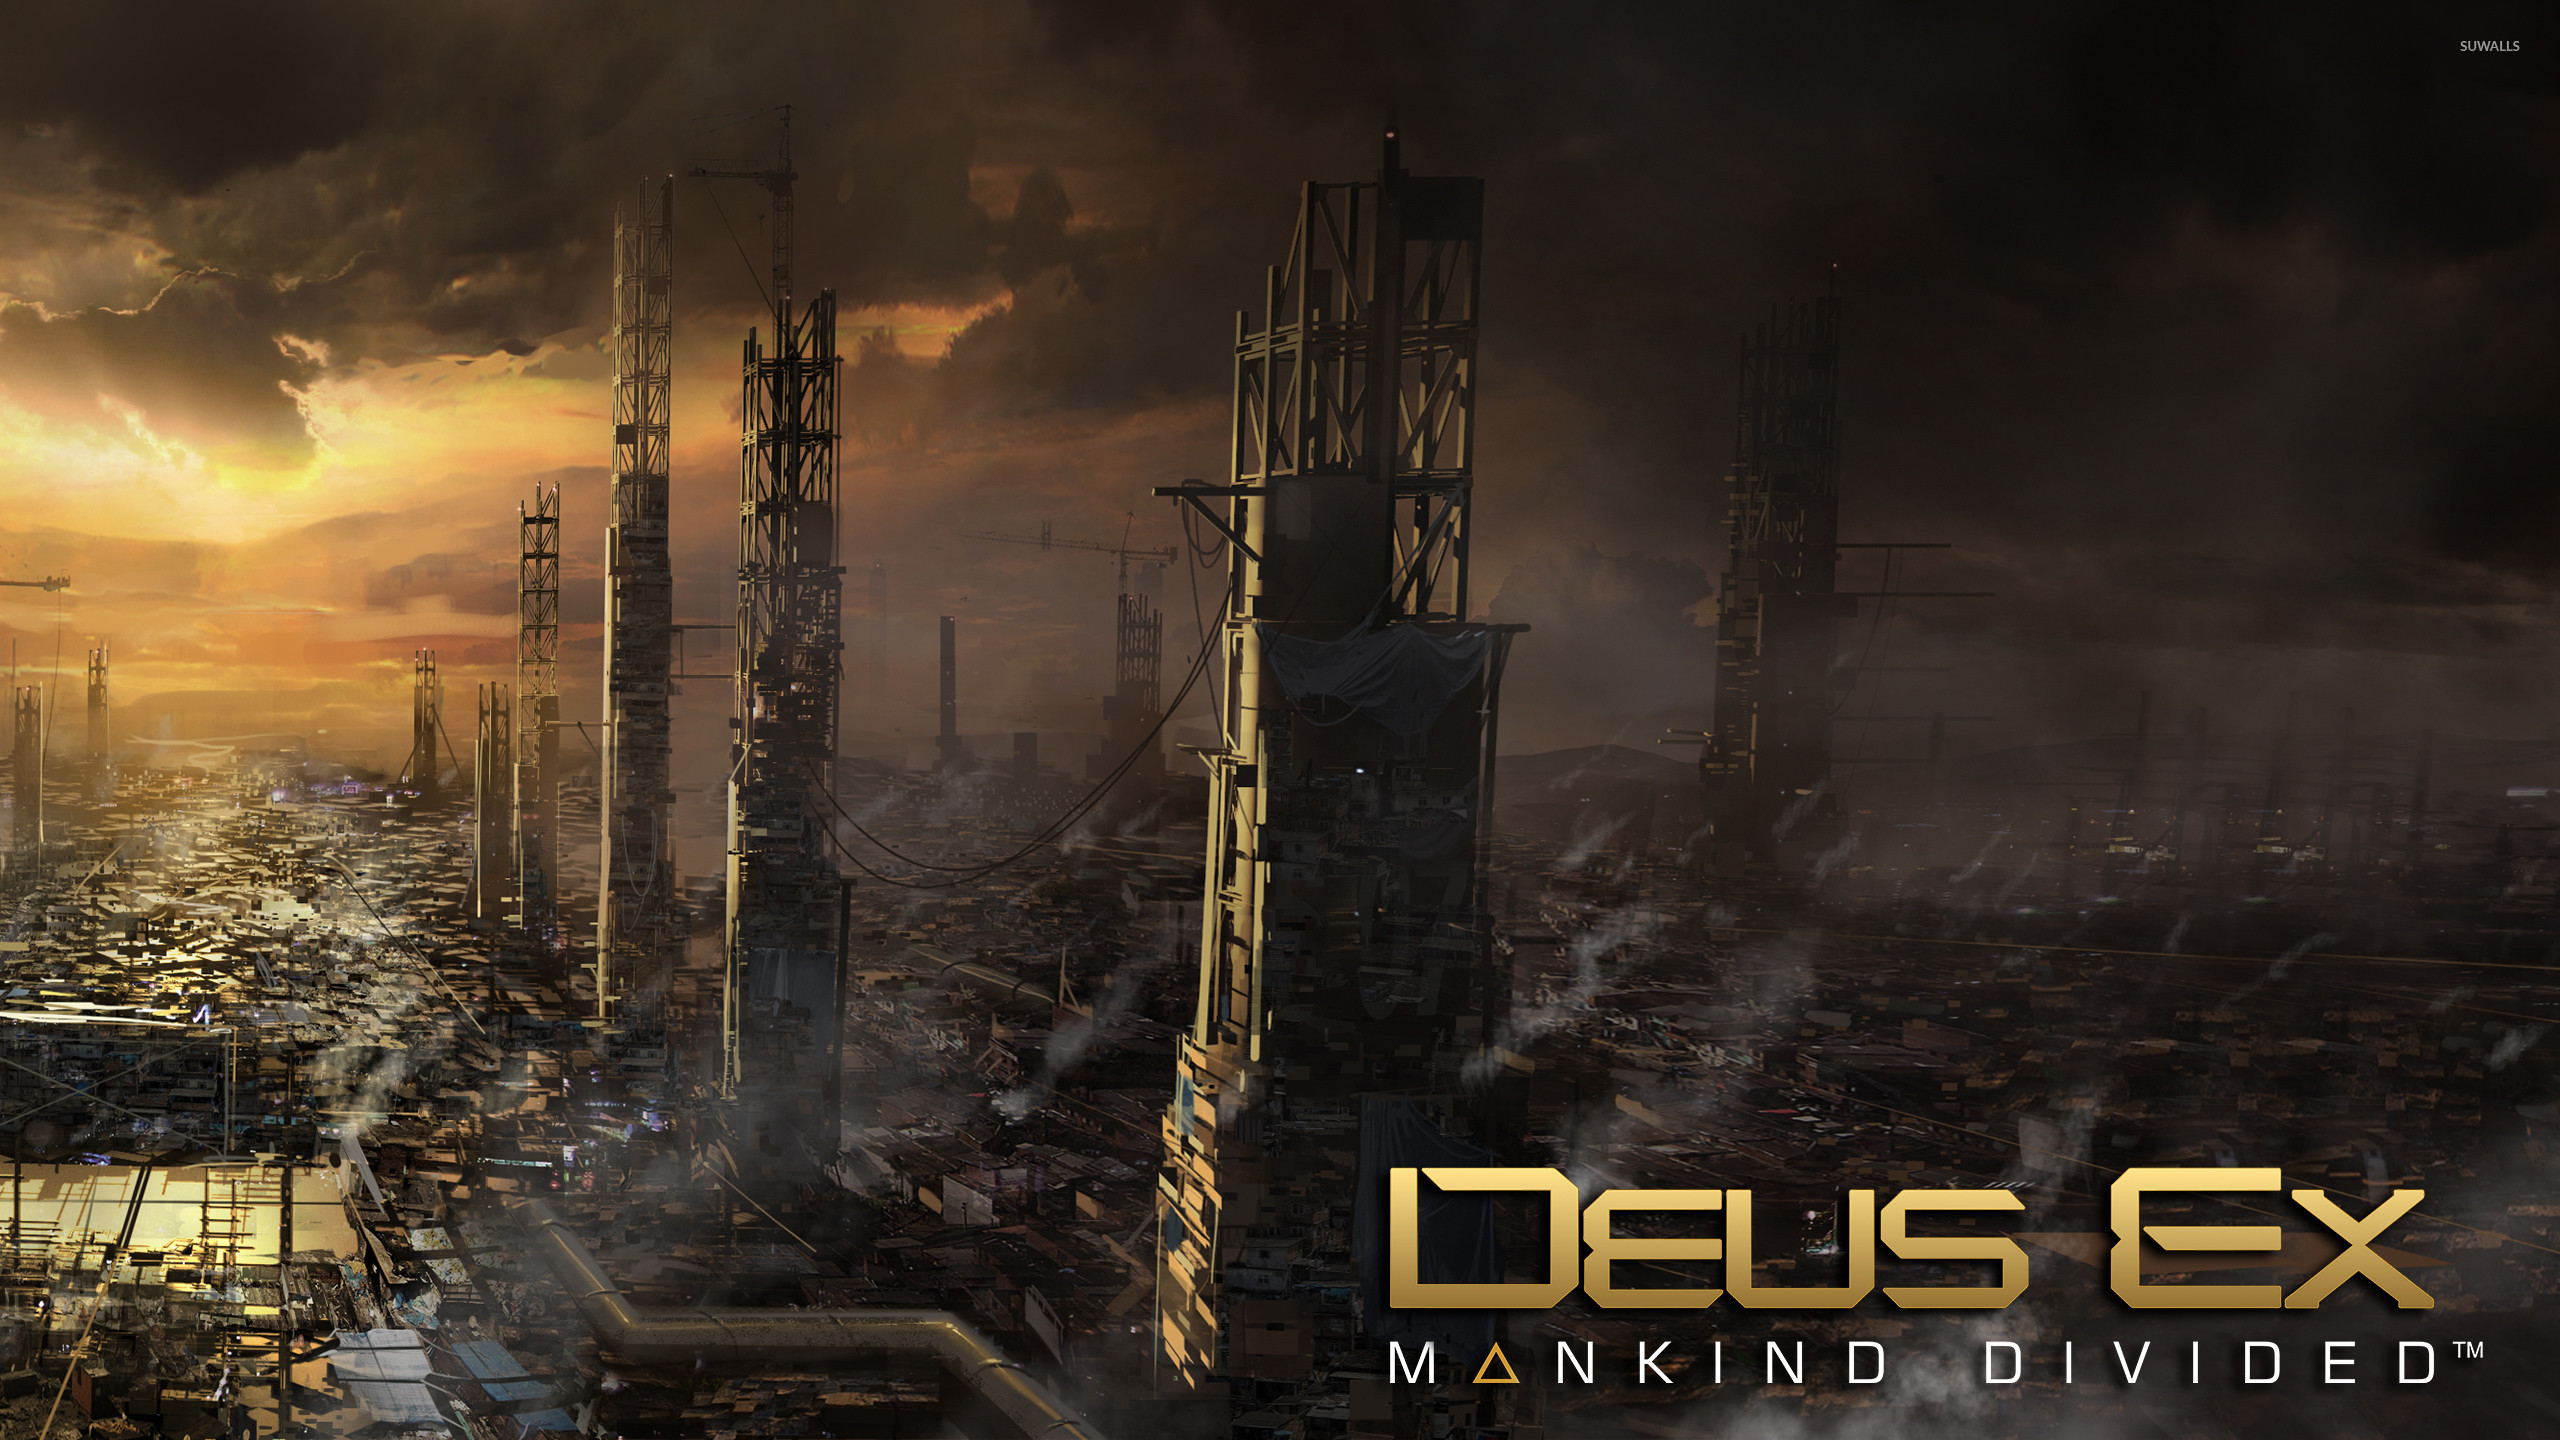 2560x1440 Sunset above the city in Deus Ex: Mankind Divided wallpaper  jpg